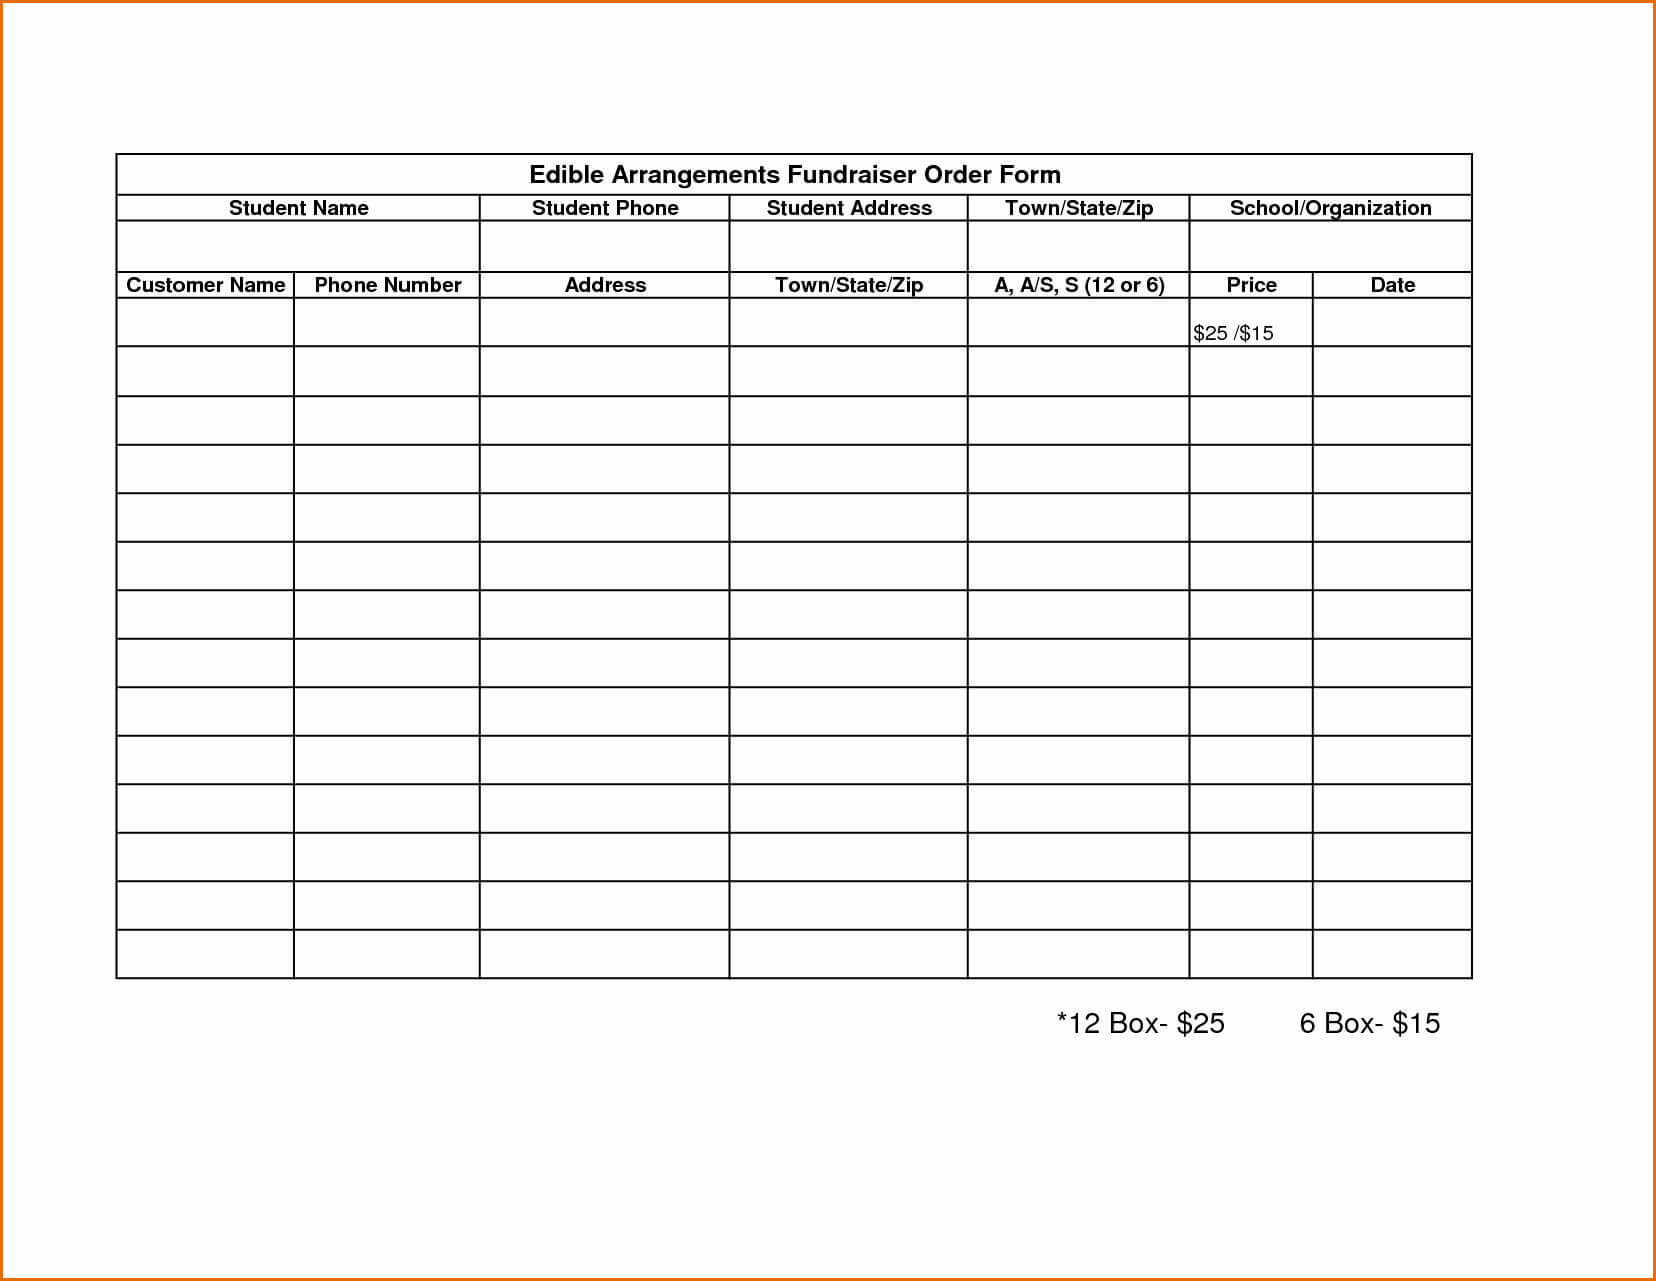 020 Fundraisings Templates Free Sample Business Loan In Blank Fundraiser Order Form Template